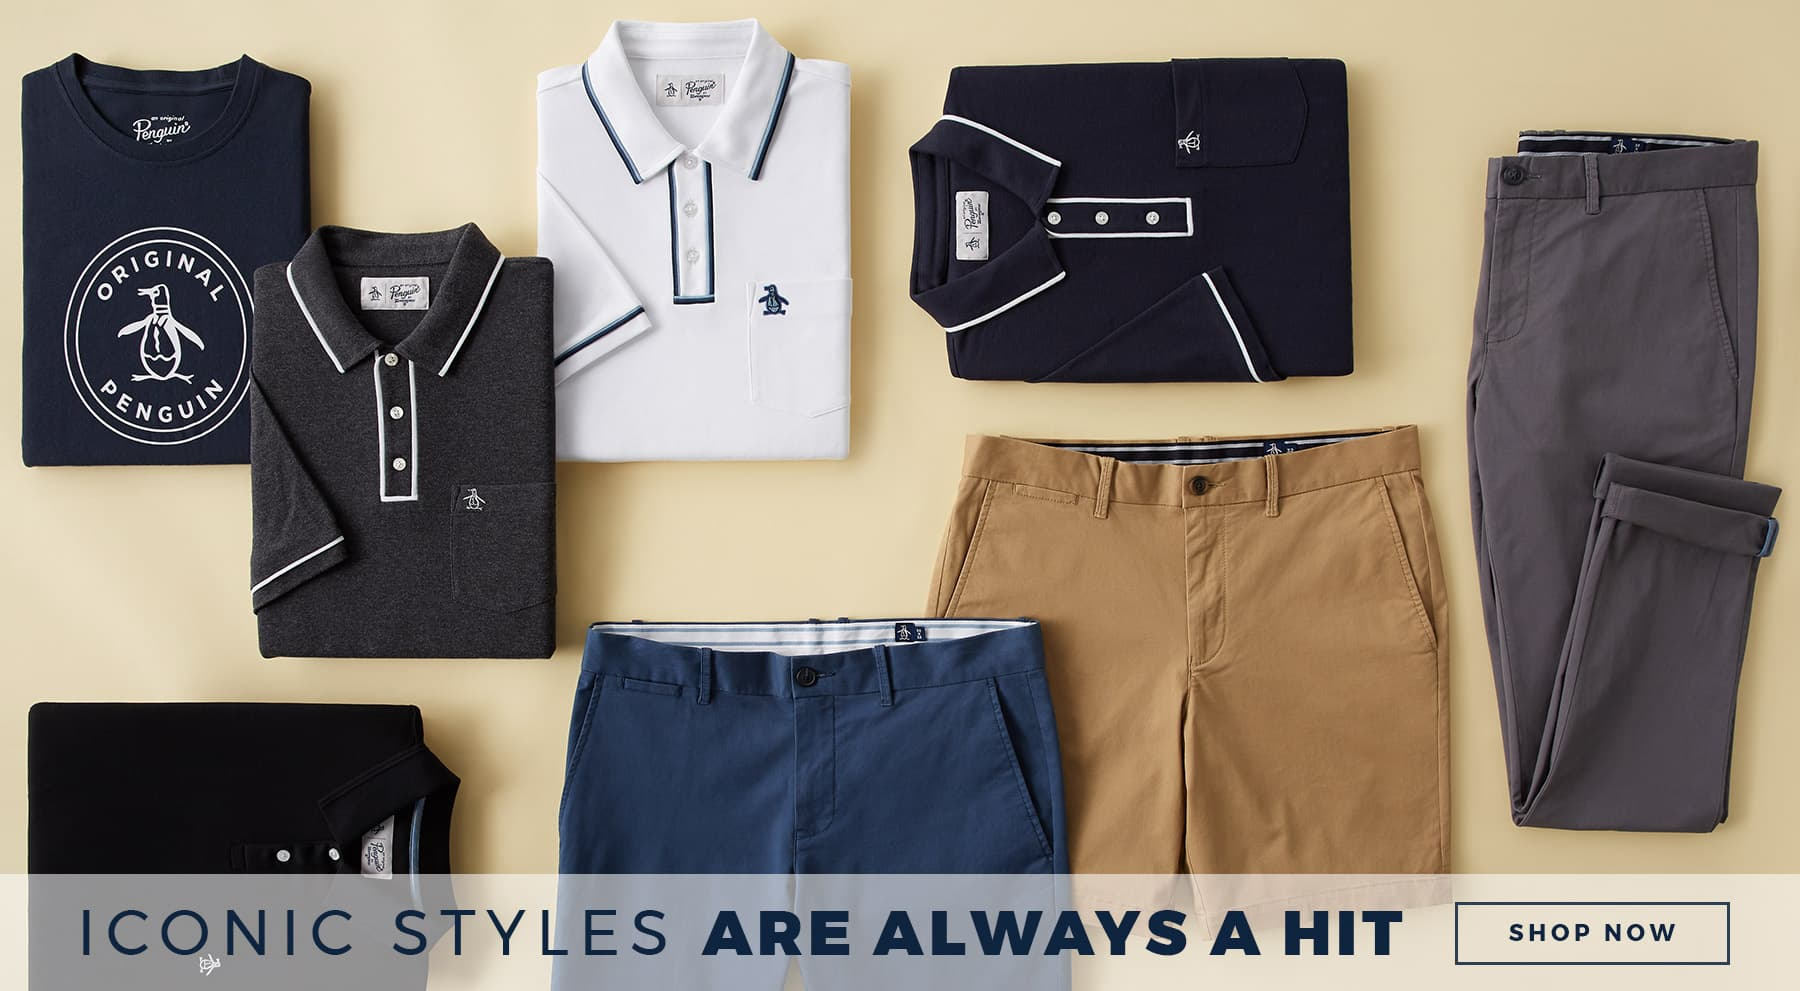 Iconic styles are always a hit SHOP NOW